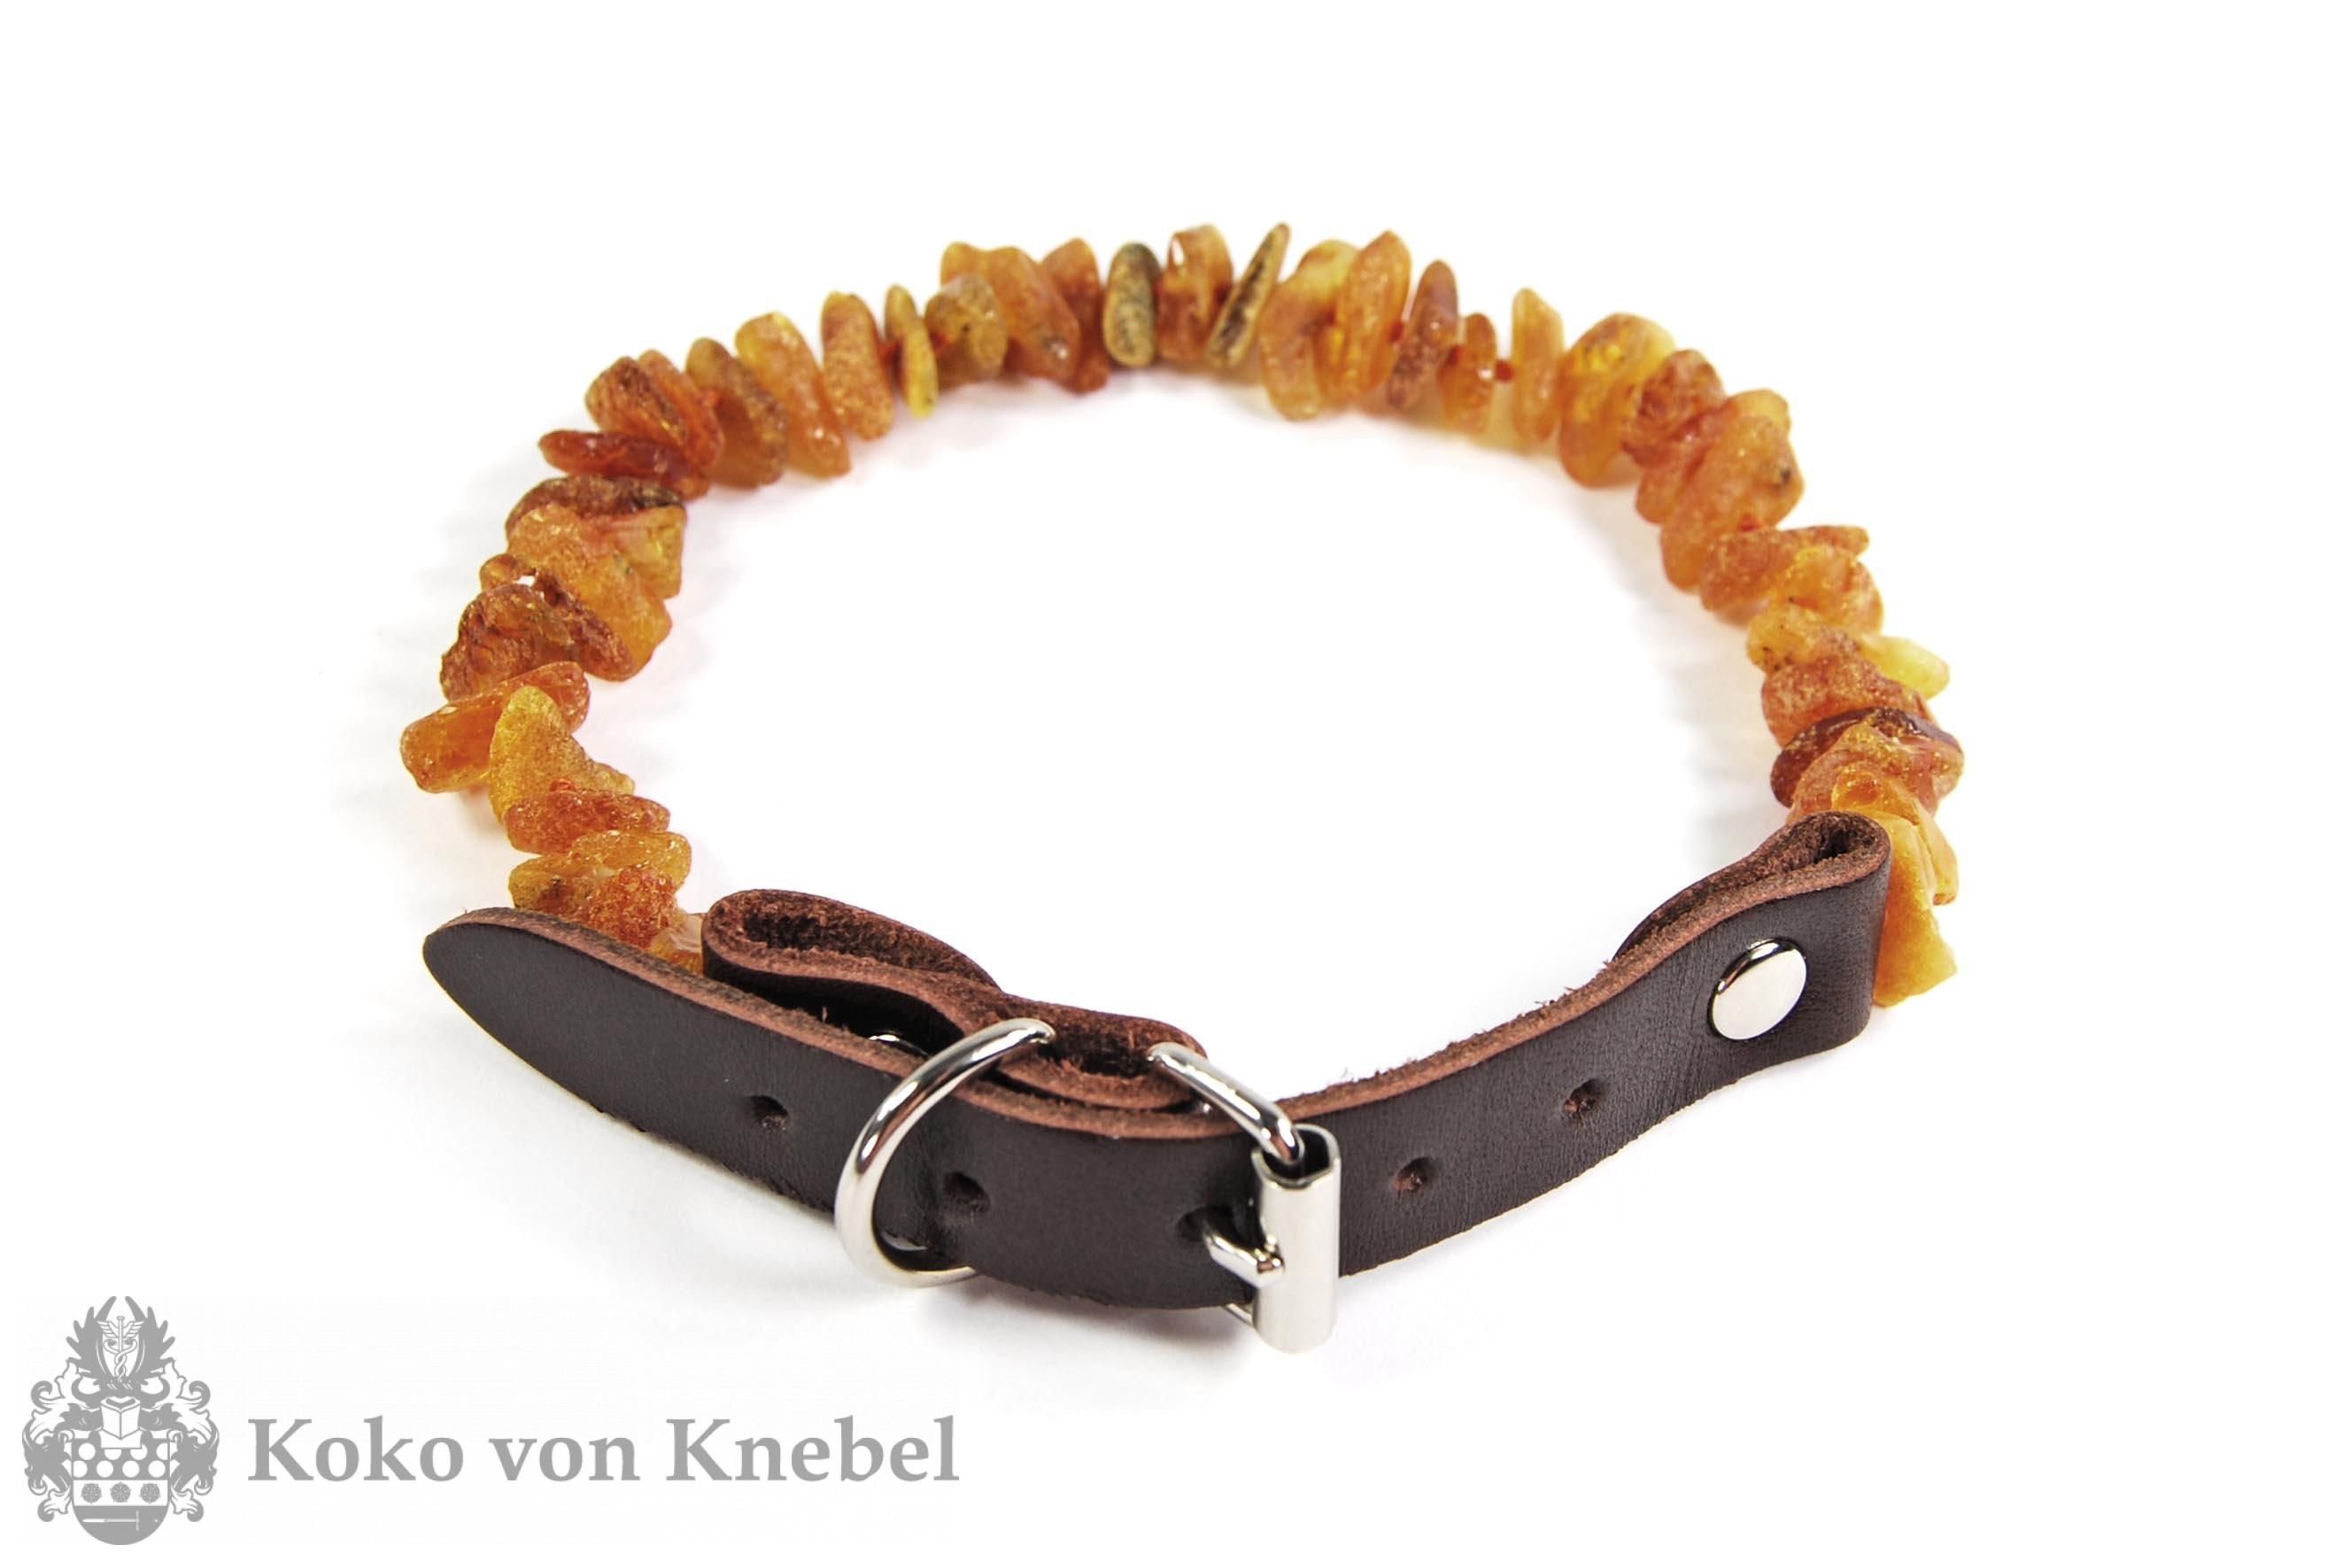 Chic amber collar, the natural shock against ticks, can be ordered directly online on our website at kokovonknebel.com